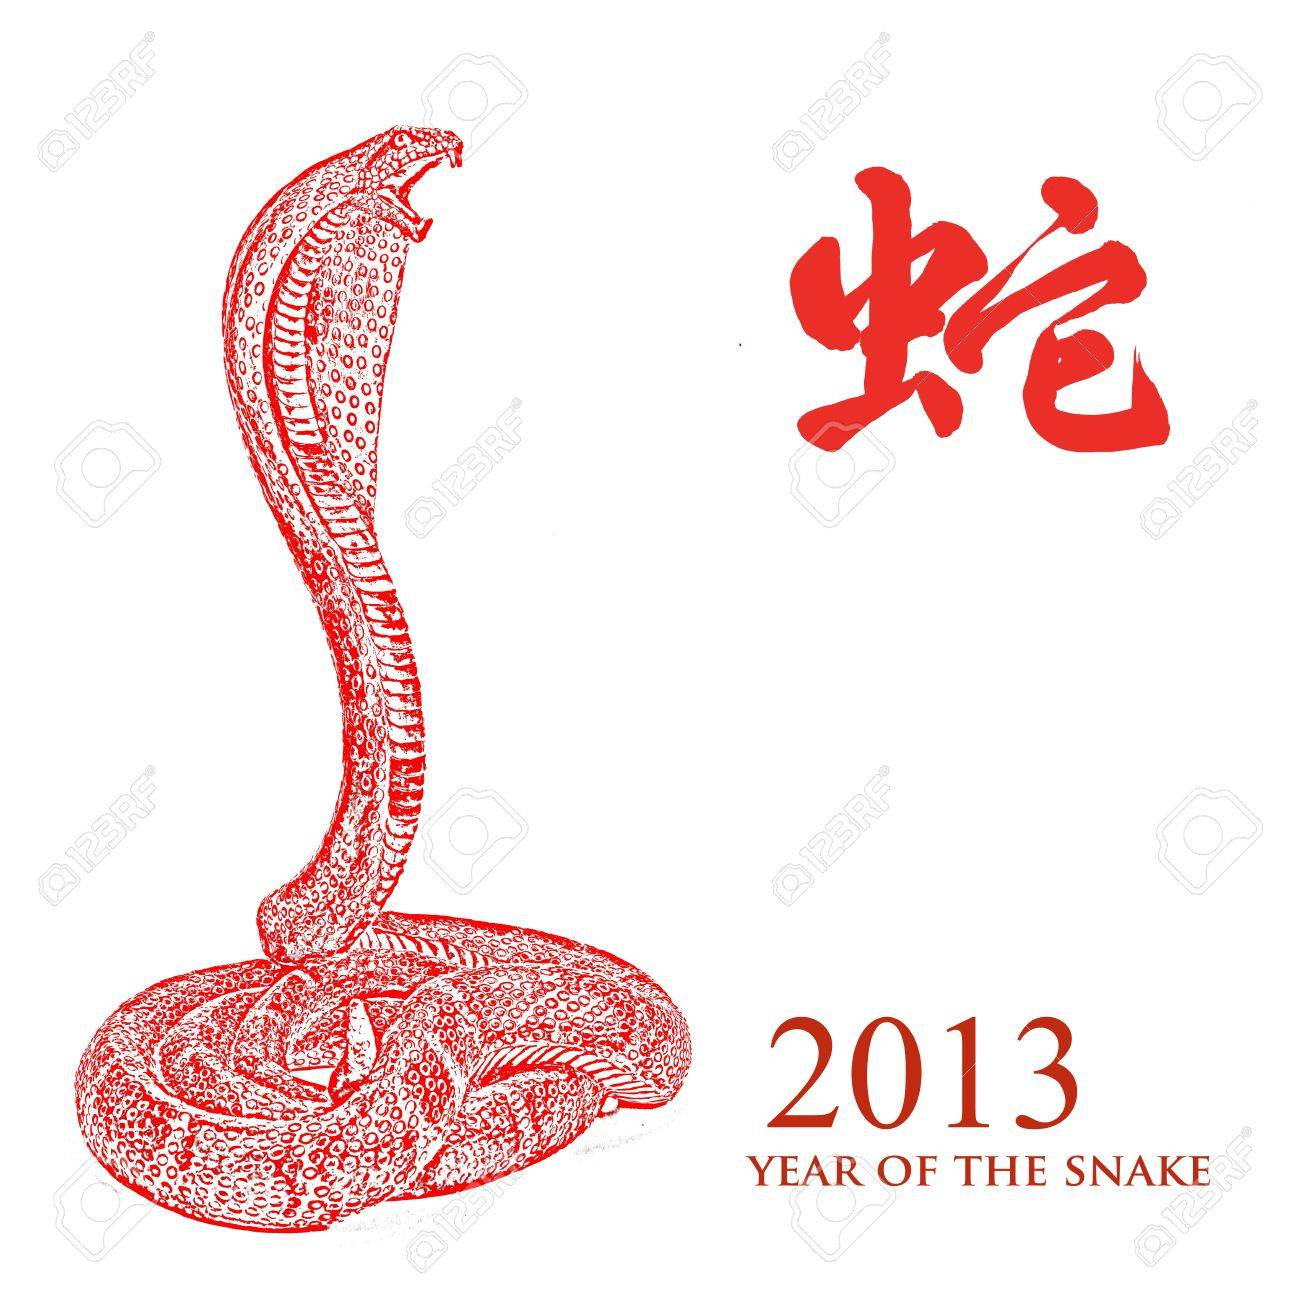 Year of the snake 2013 characteristic Stock Photo - 16215850